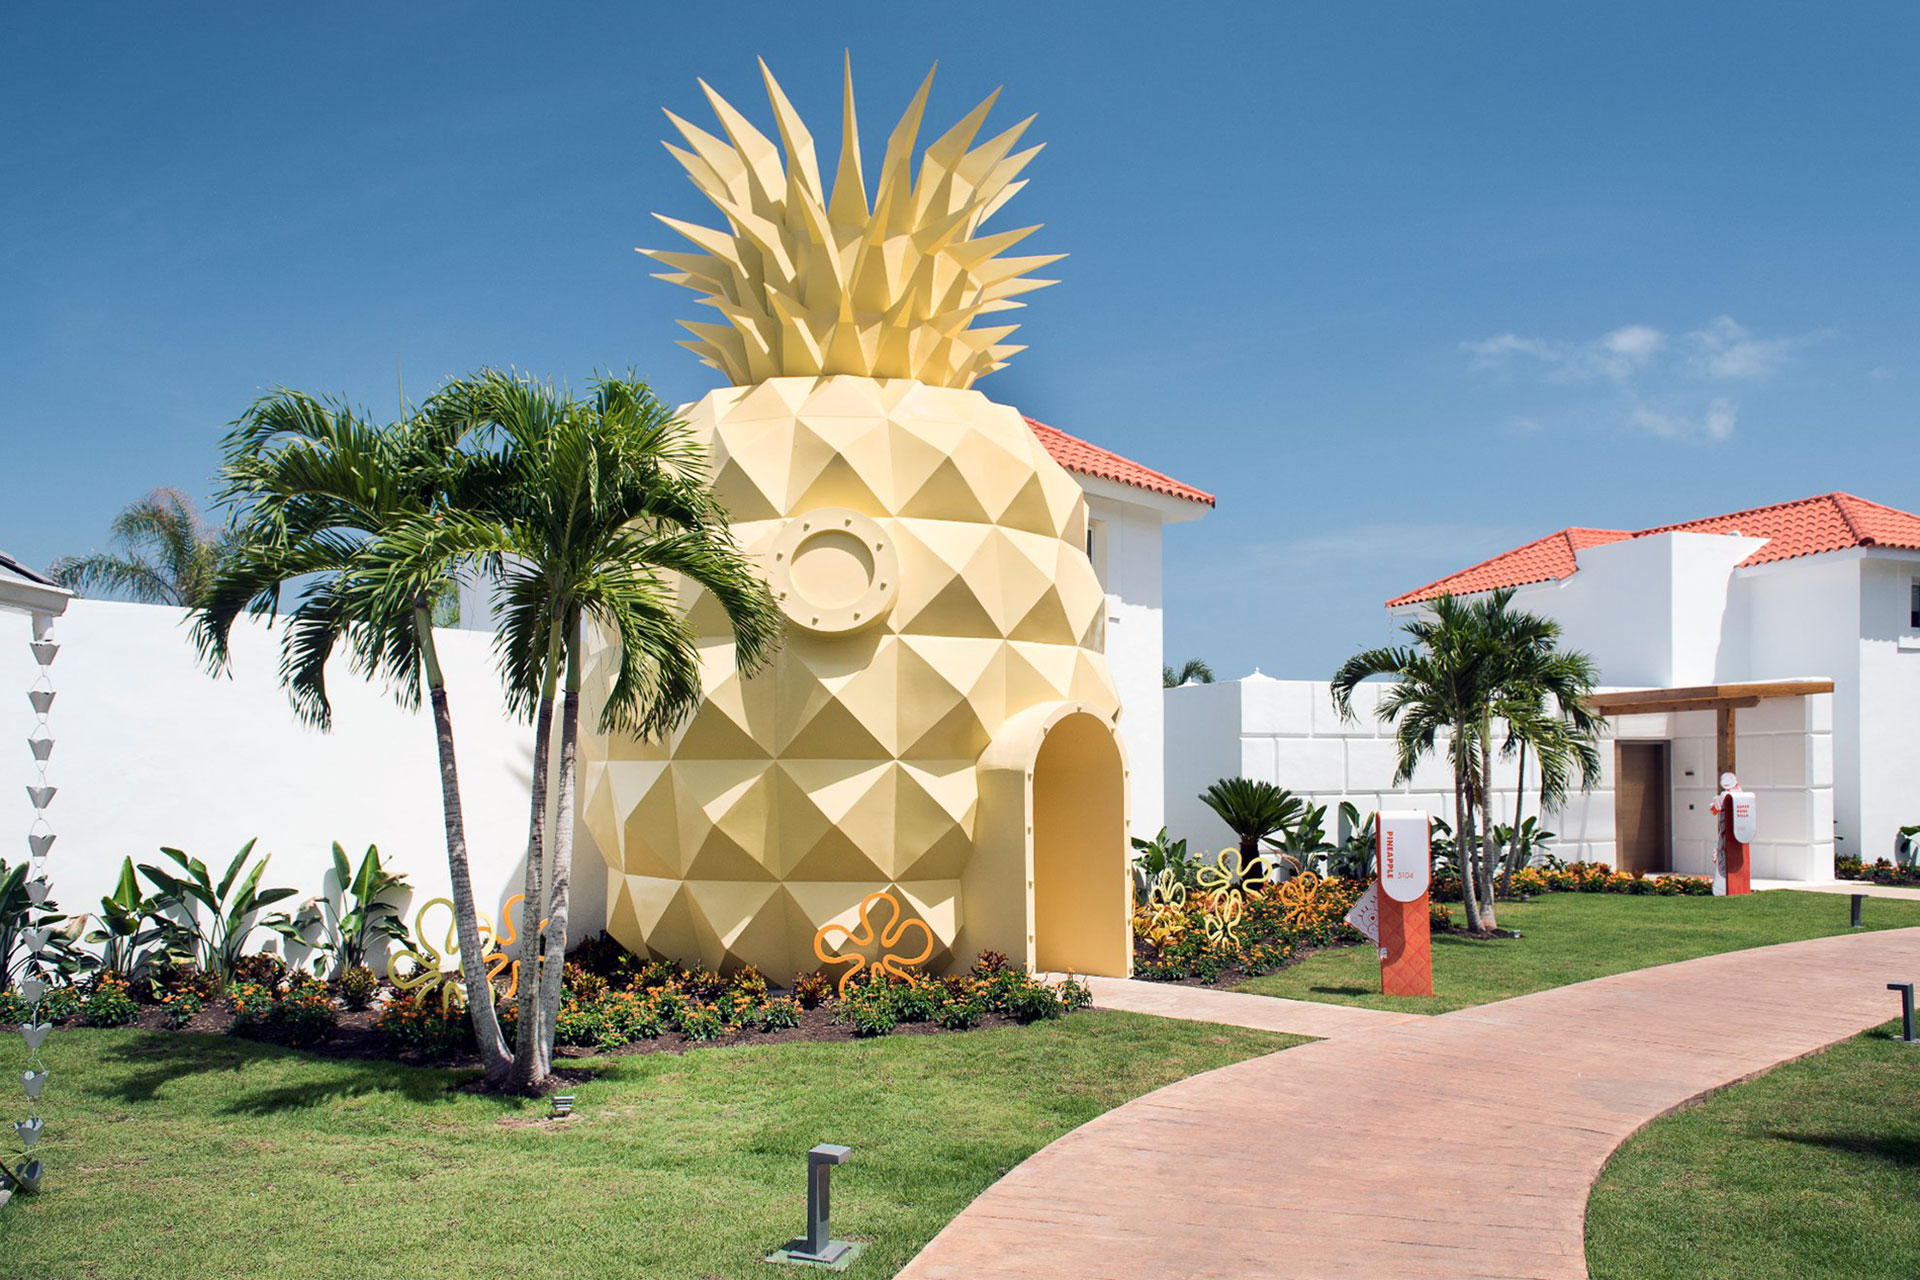 Spongebob Squarepants Suite at Nickelodeon Hotels and Resorts Punta Cana; Courtesy of Nickelodeon Hotels and Resorts Punta Cana